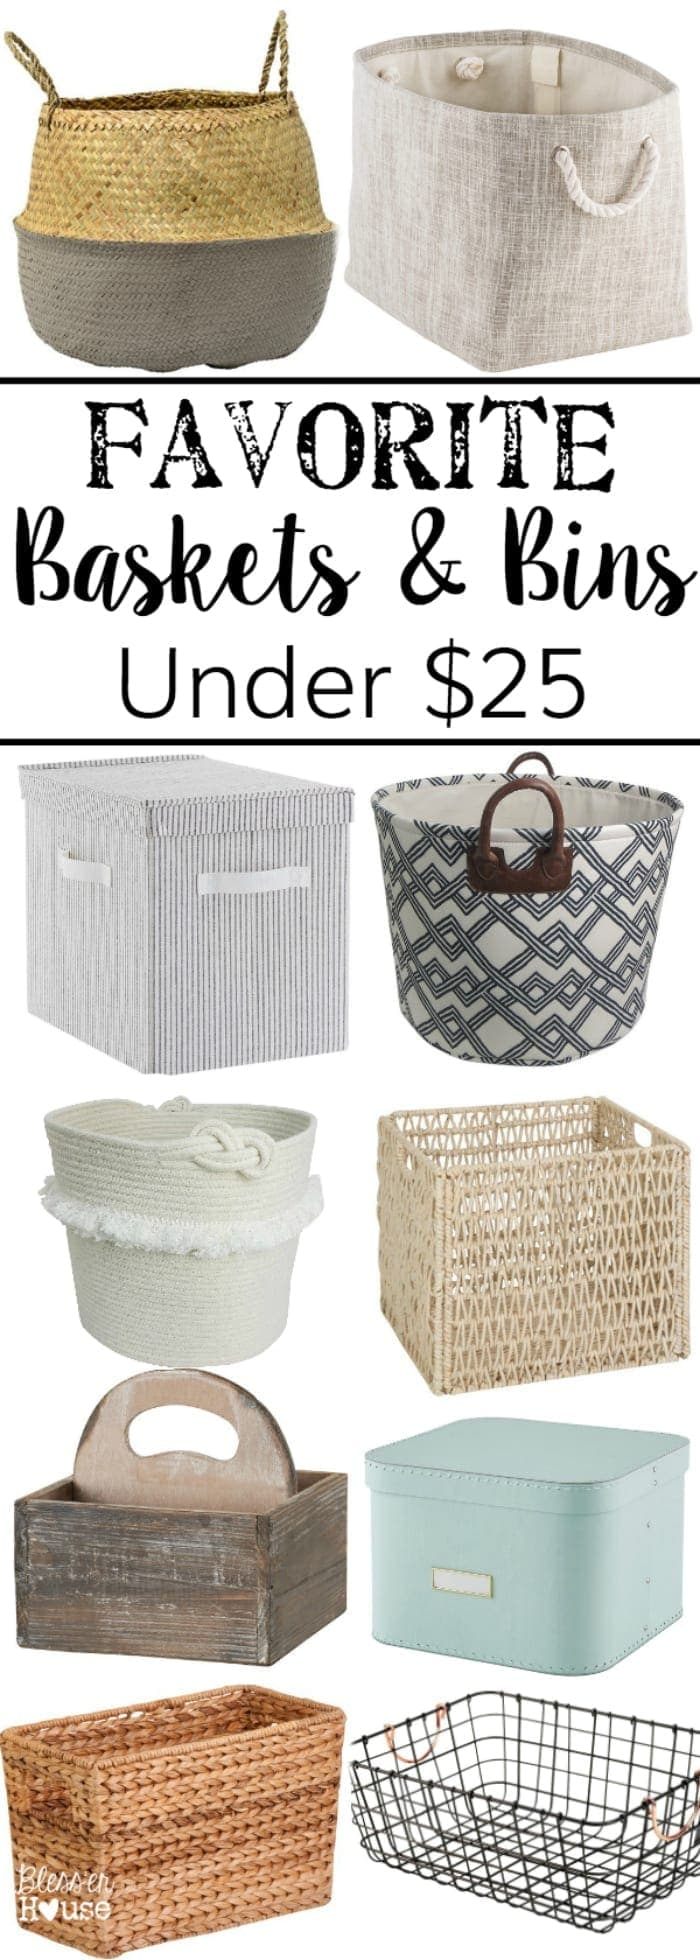 Favorite Cottage Style Baskets and Bins for Under $25 | blesserhouse.com - A budget shopping guide with 35+ gorgeous cottage-style wire, woven, wood, and neutral fabric baskets and bins for a tight budget.